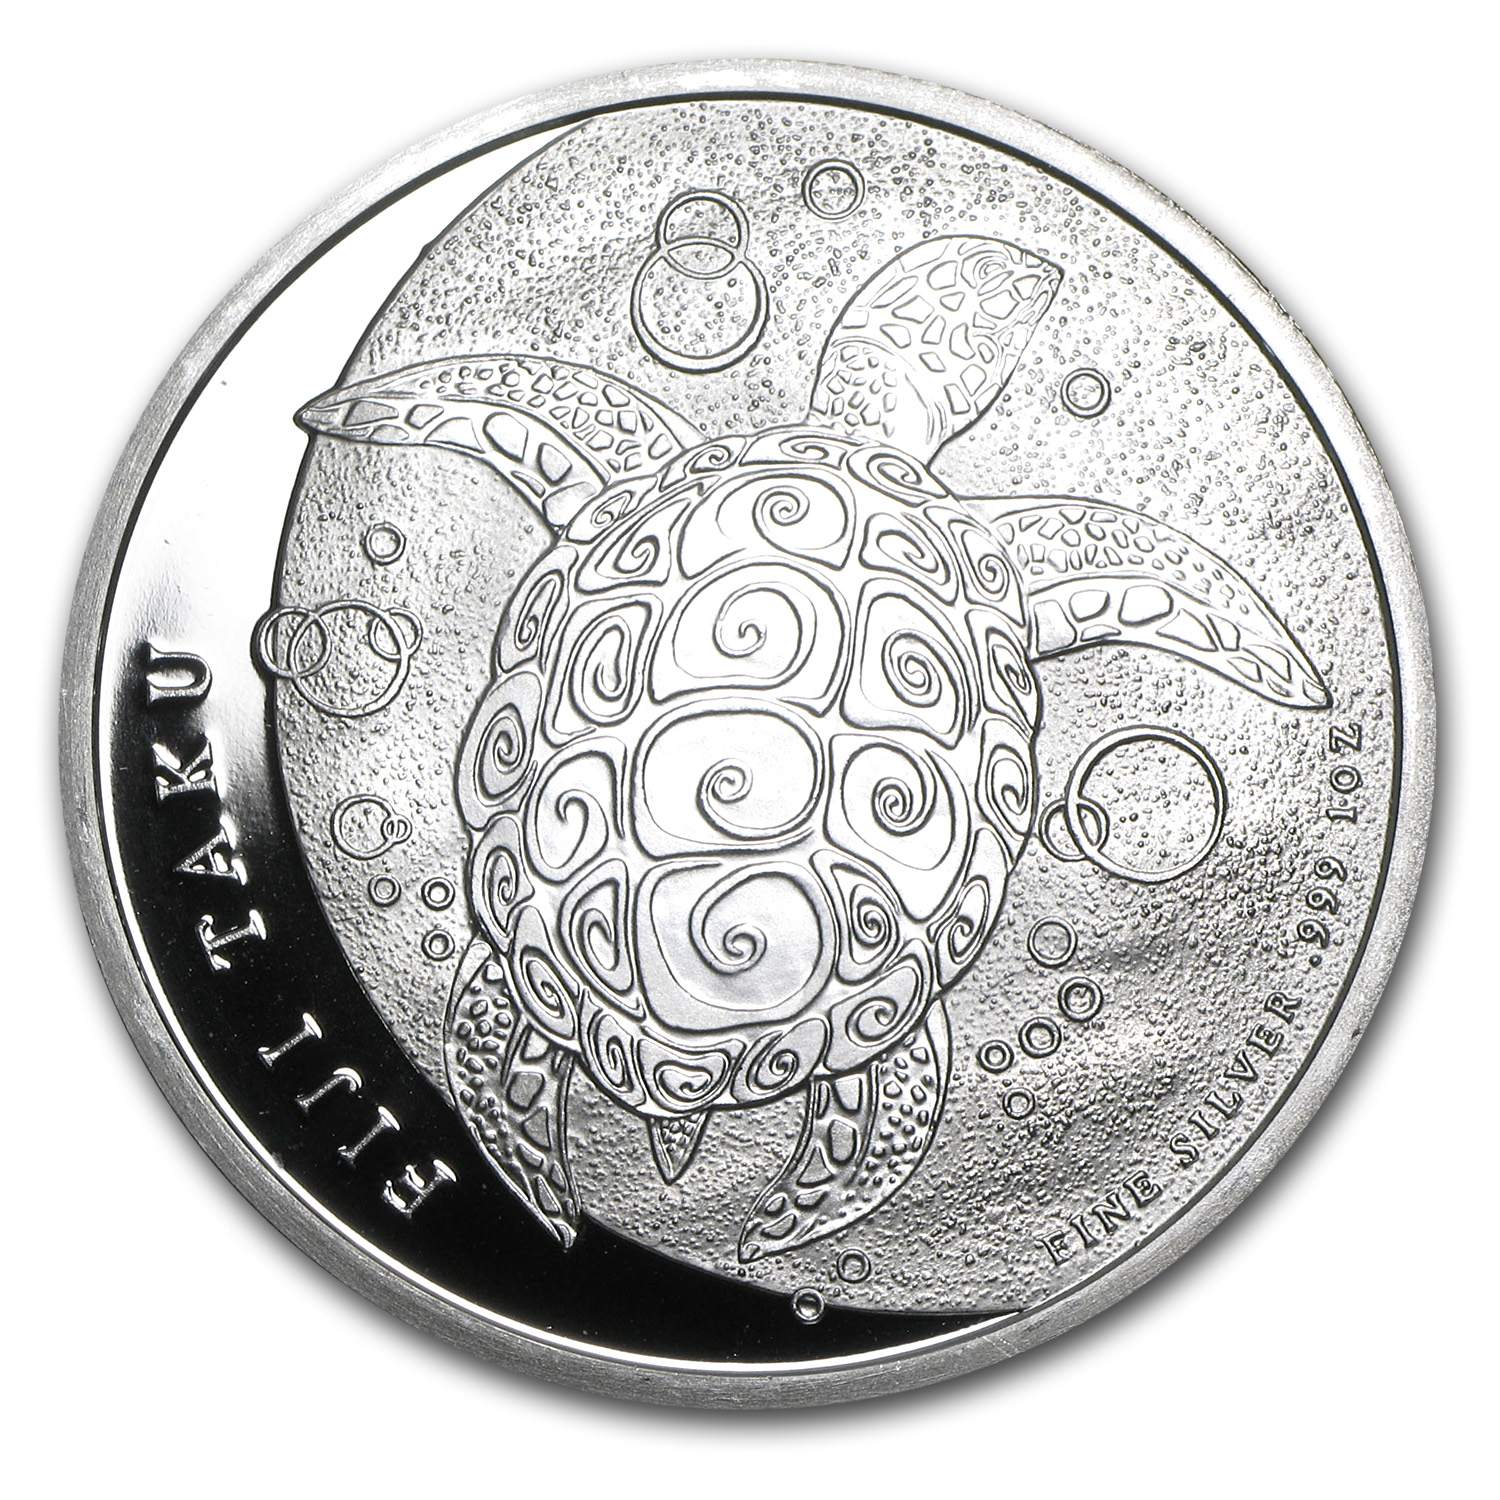 2011 1 oz Silver New Zealand Mint $2 Fiji Taku BU